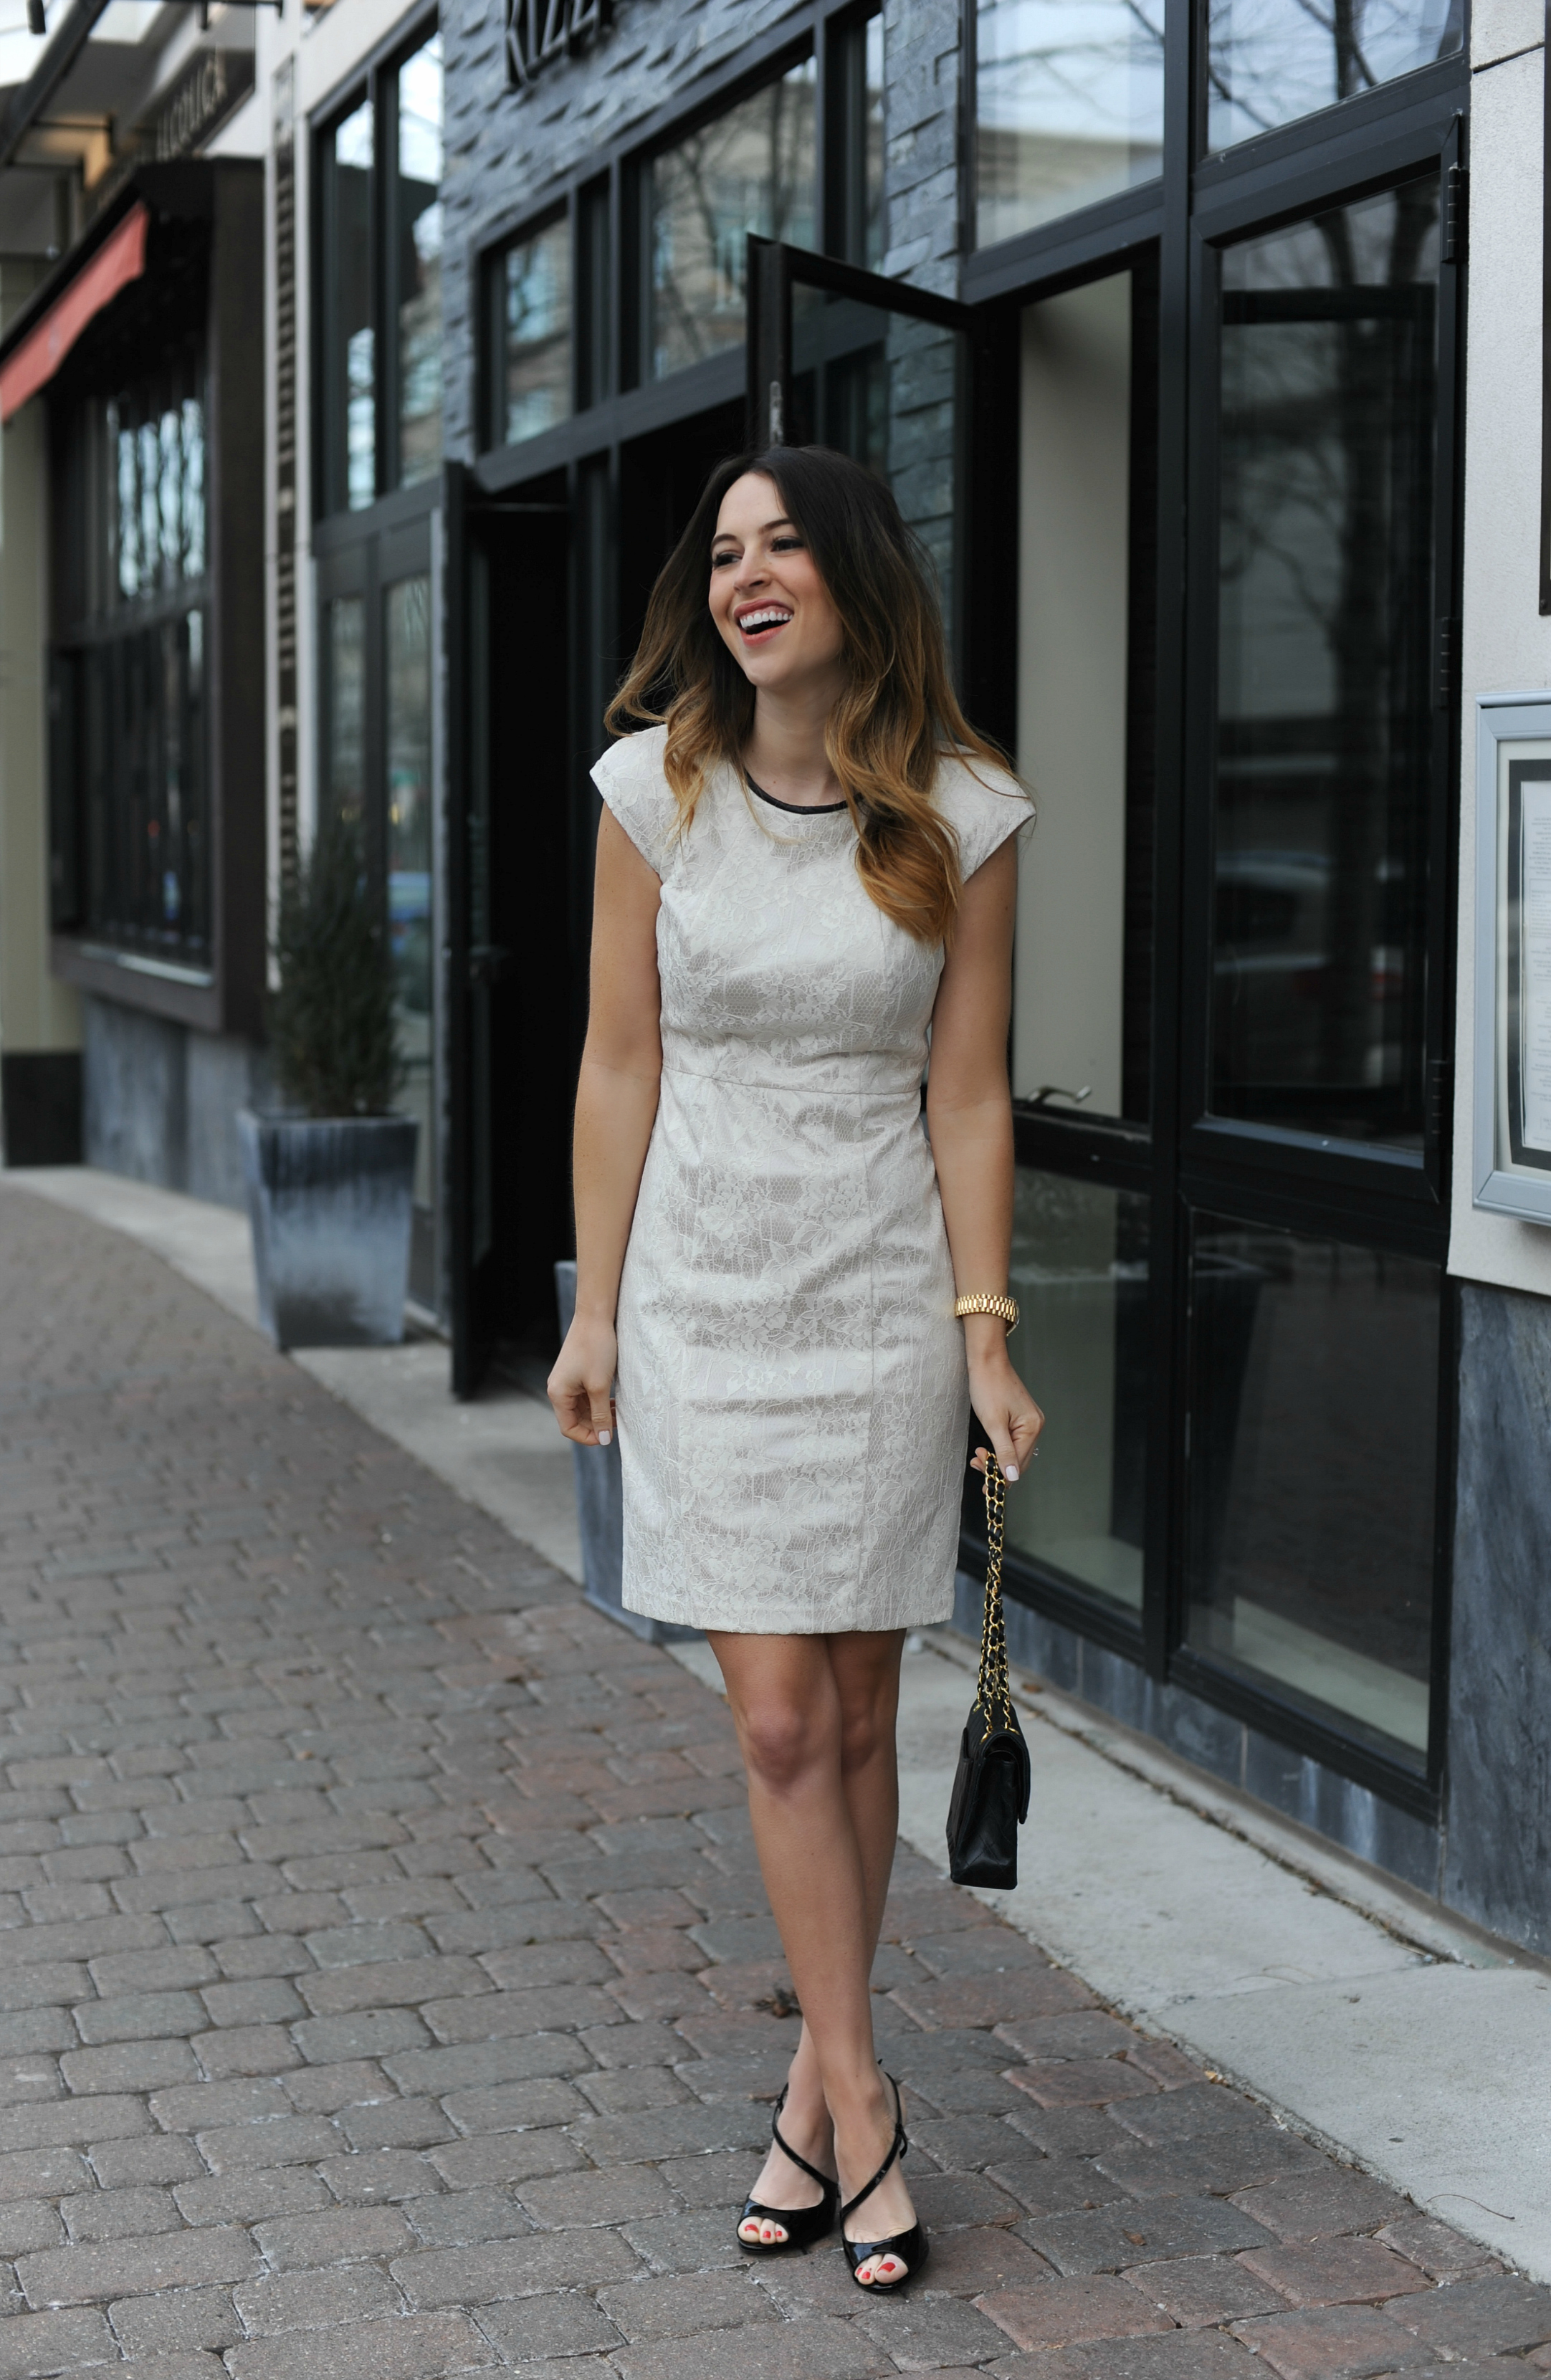 Classy Fall Engagement Party Outfit Ideas